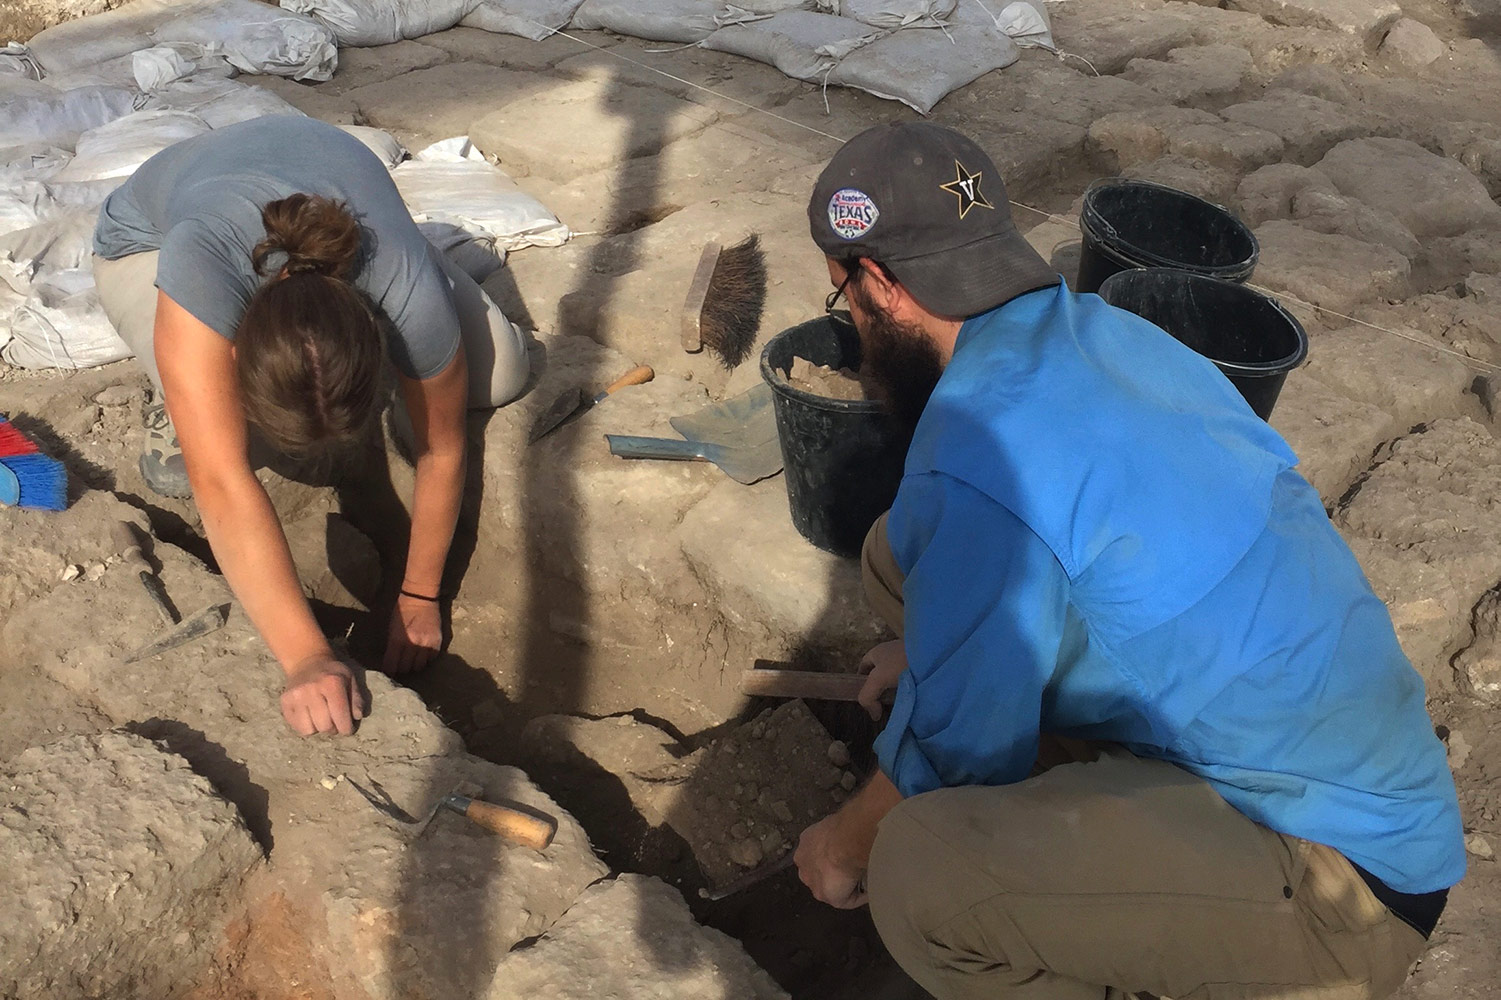 Archaeologists digging at an excavation site